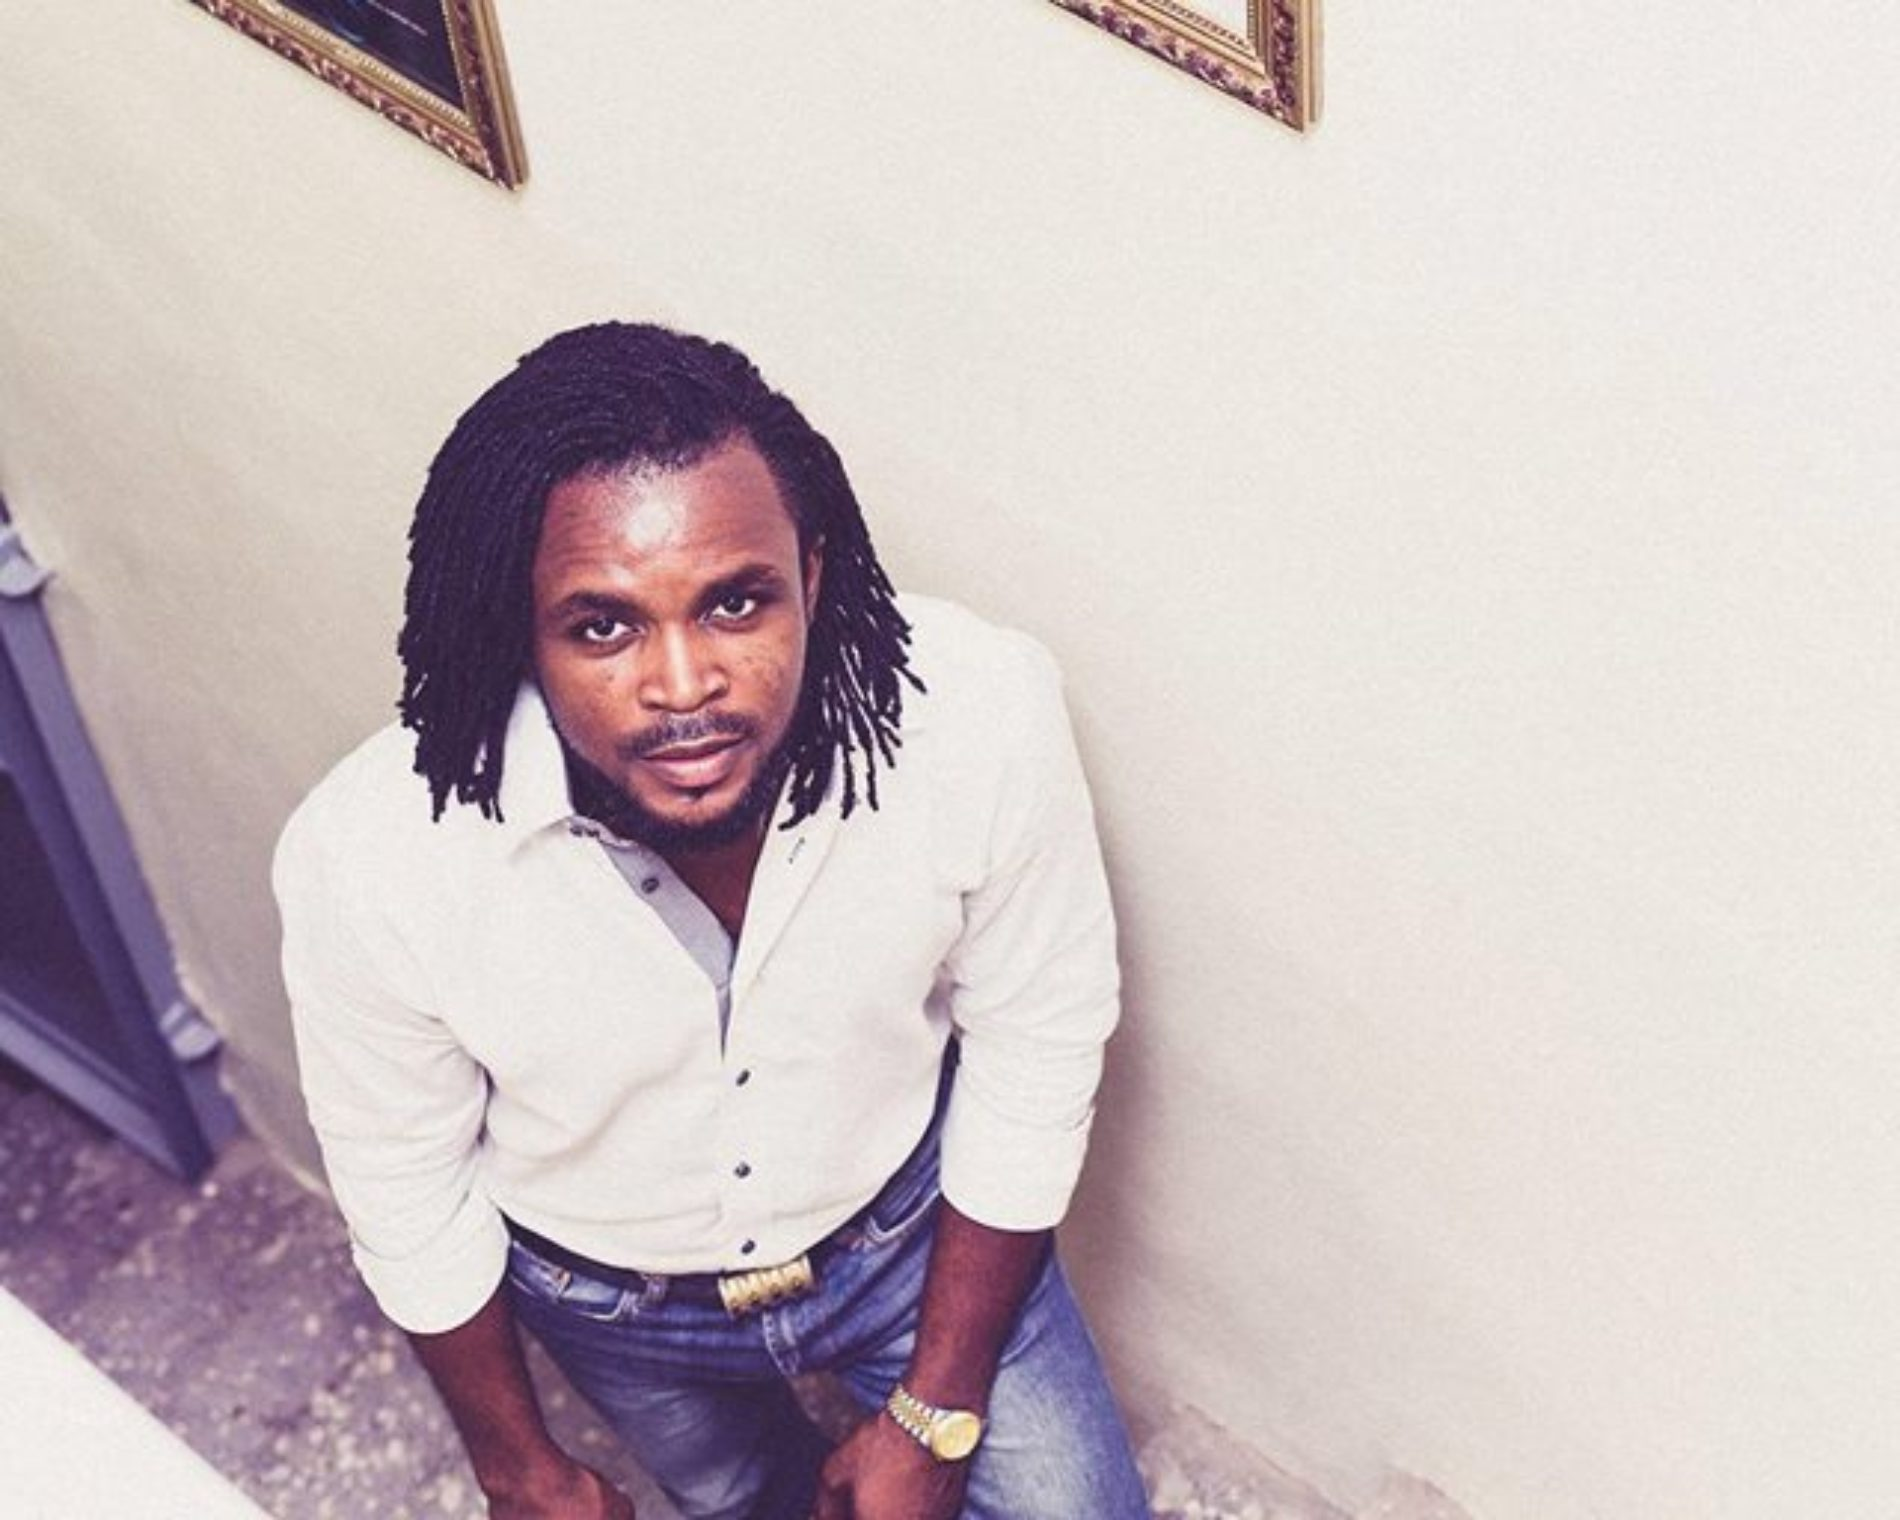 The Piece About Olumide Makanjuola's LGBT Activism in Nigeria